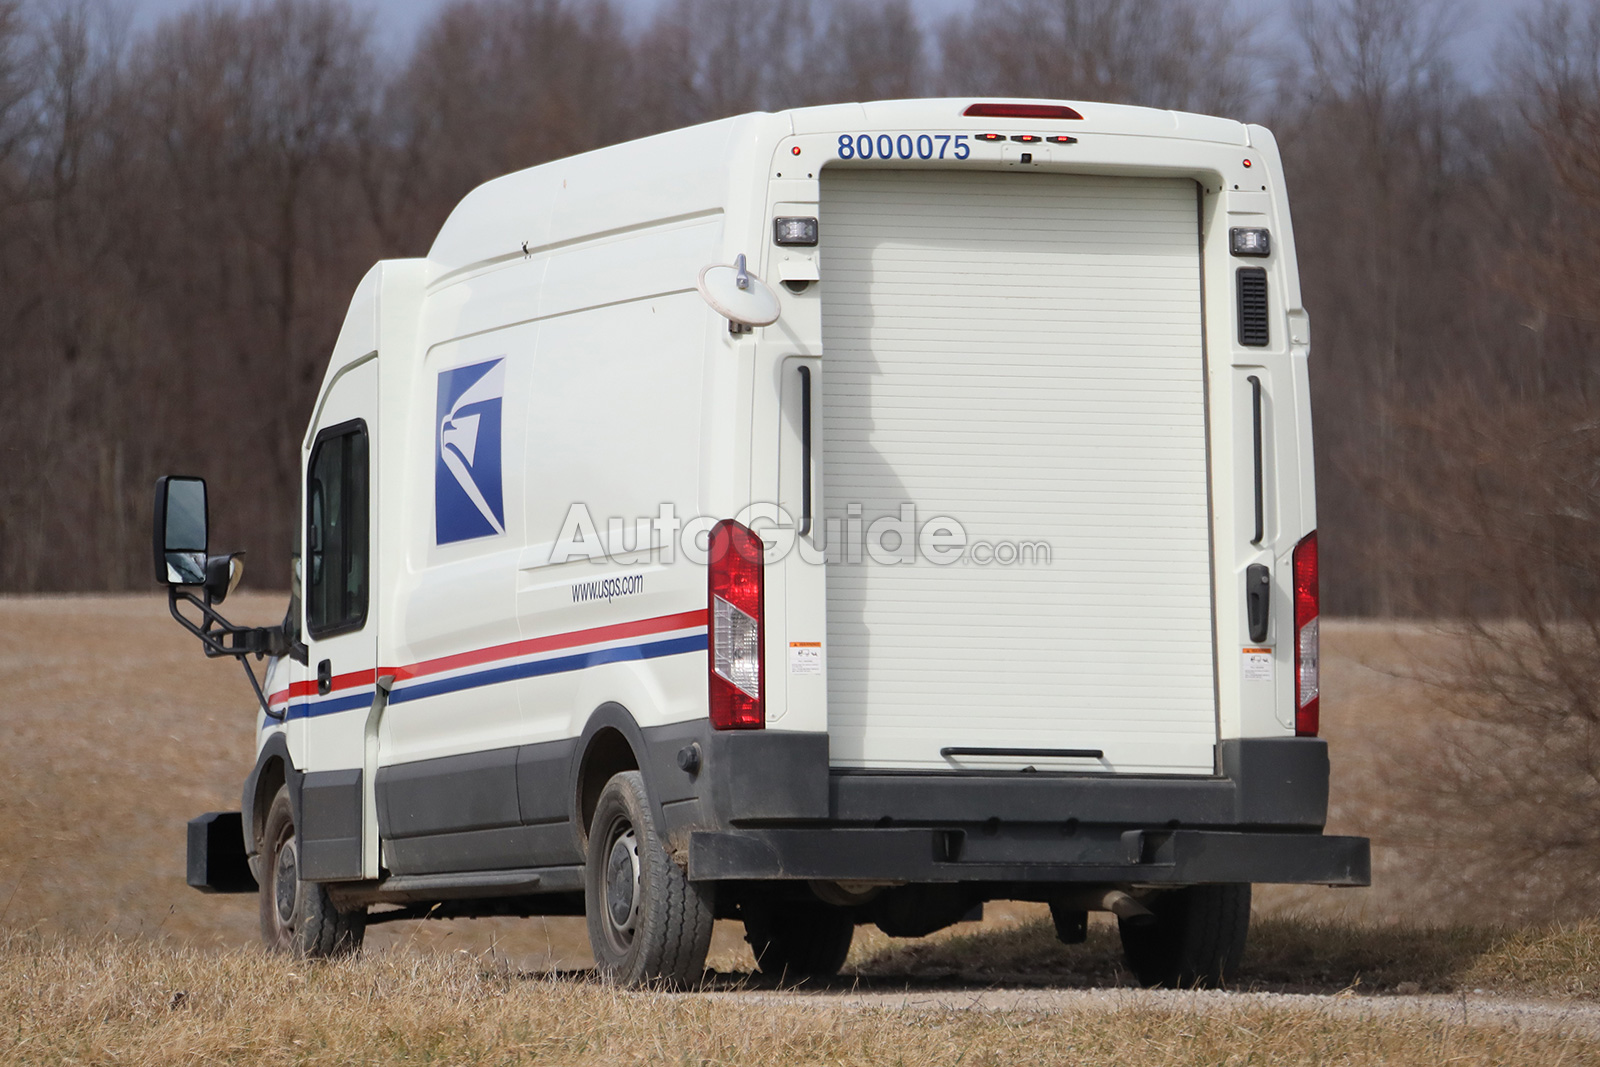 The Next USPS Truck Will Look Kind of Hilarious » AutoGuide com News